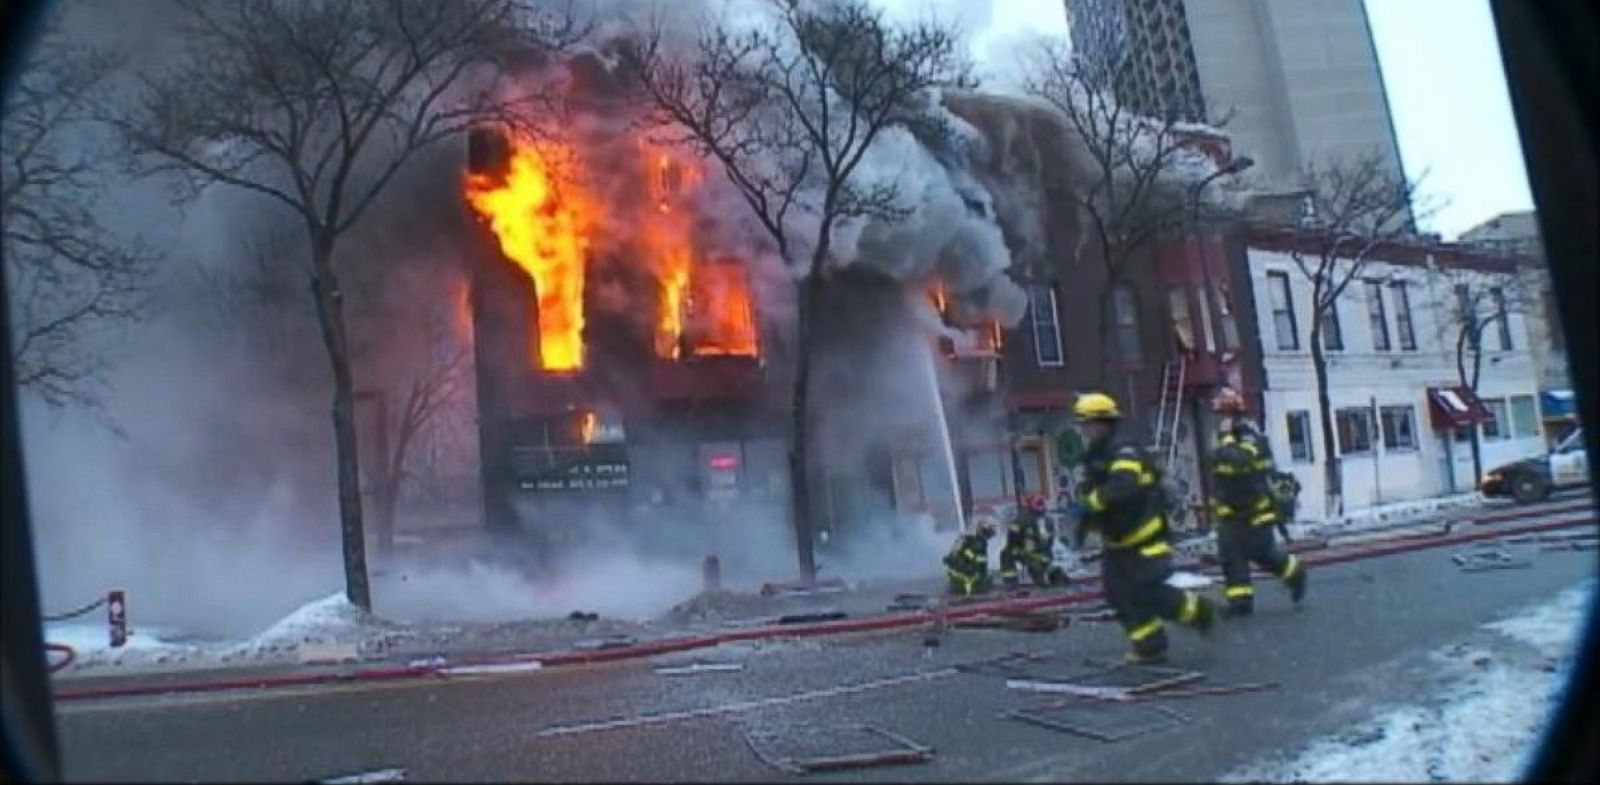 PHOTO: Firefighters respond to an explosion in an apartment building in Minneapolis, Jan 1, 2014.